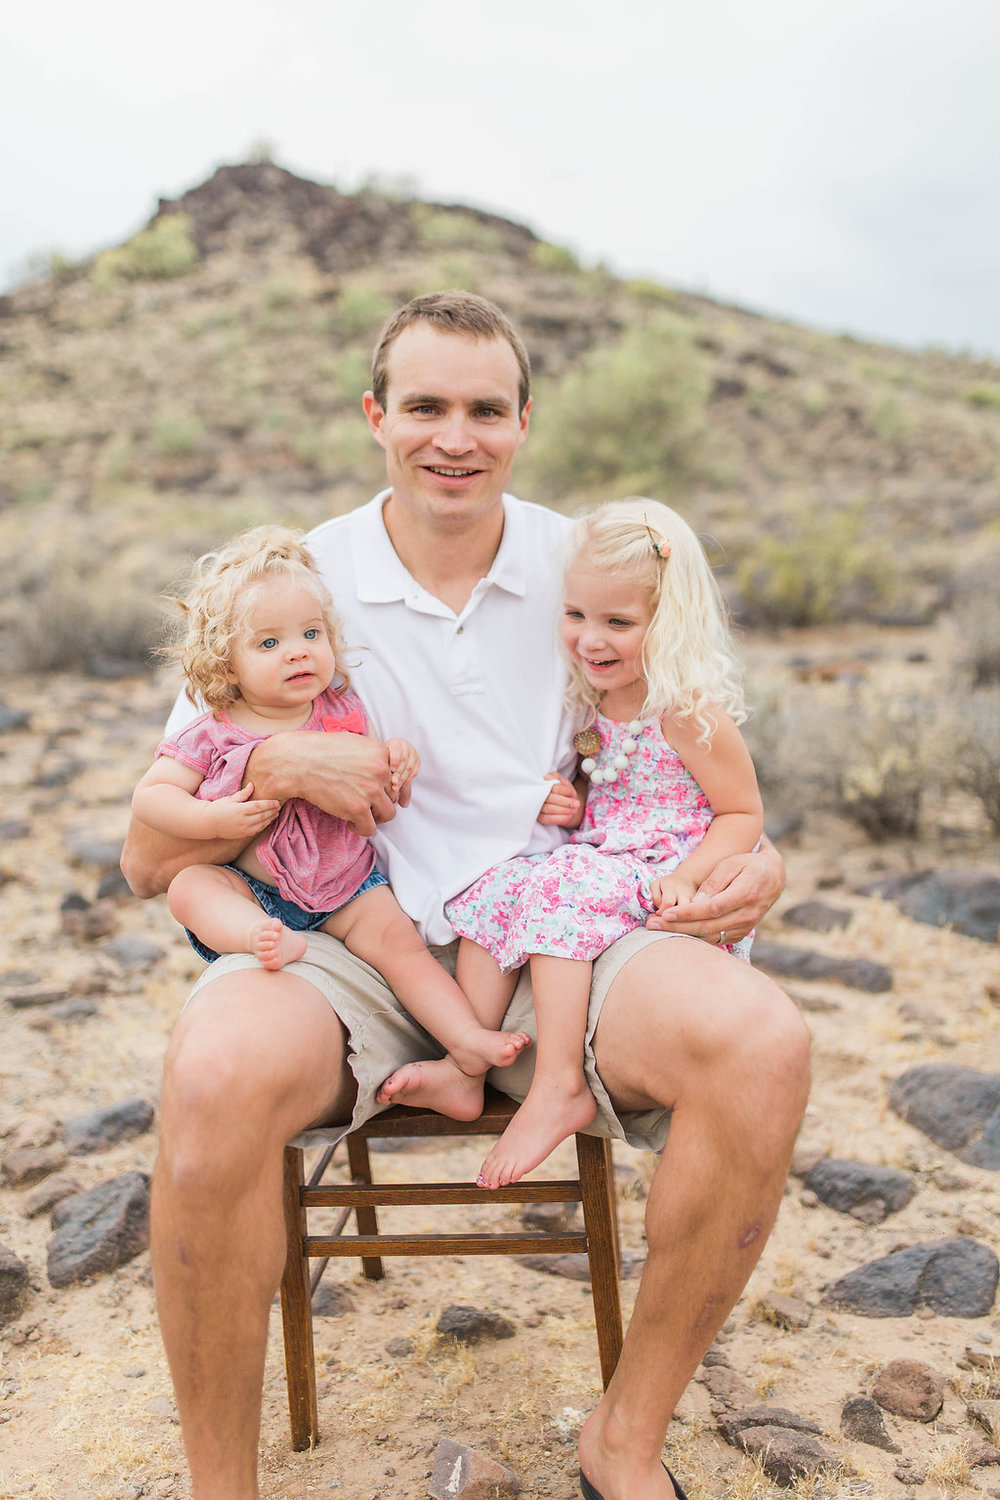 Desert Family Photo Shoot in Arizona | Emma Rose Company | Portrait Photographer | Seattle Wedding Photographer | Adorable Family Photo Shoot Outside | Family Posing | Cute Kids with Dad | Family Photo Shoot | Daddy Daughter Pictures